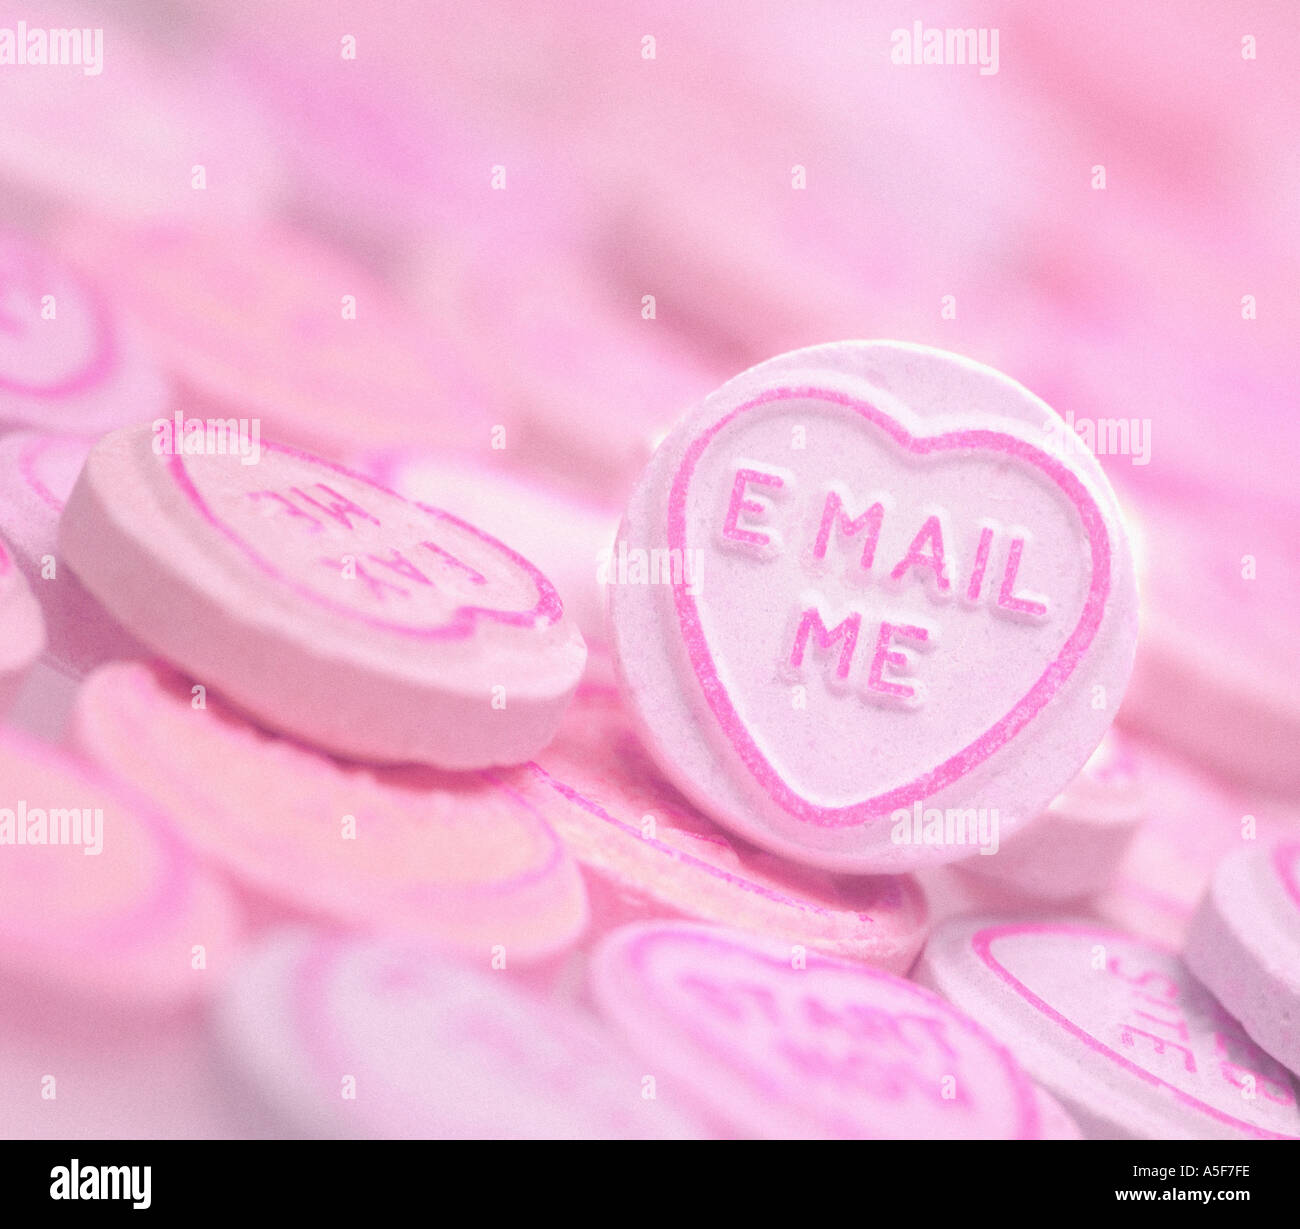 Pink sweets with E MAIL ME text - Stock Image